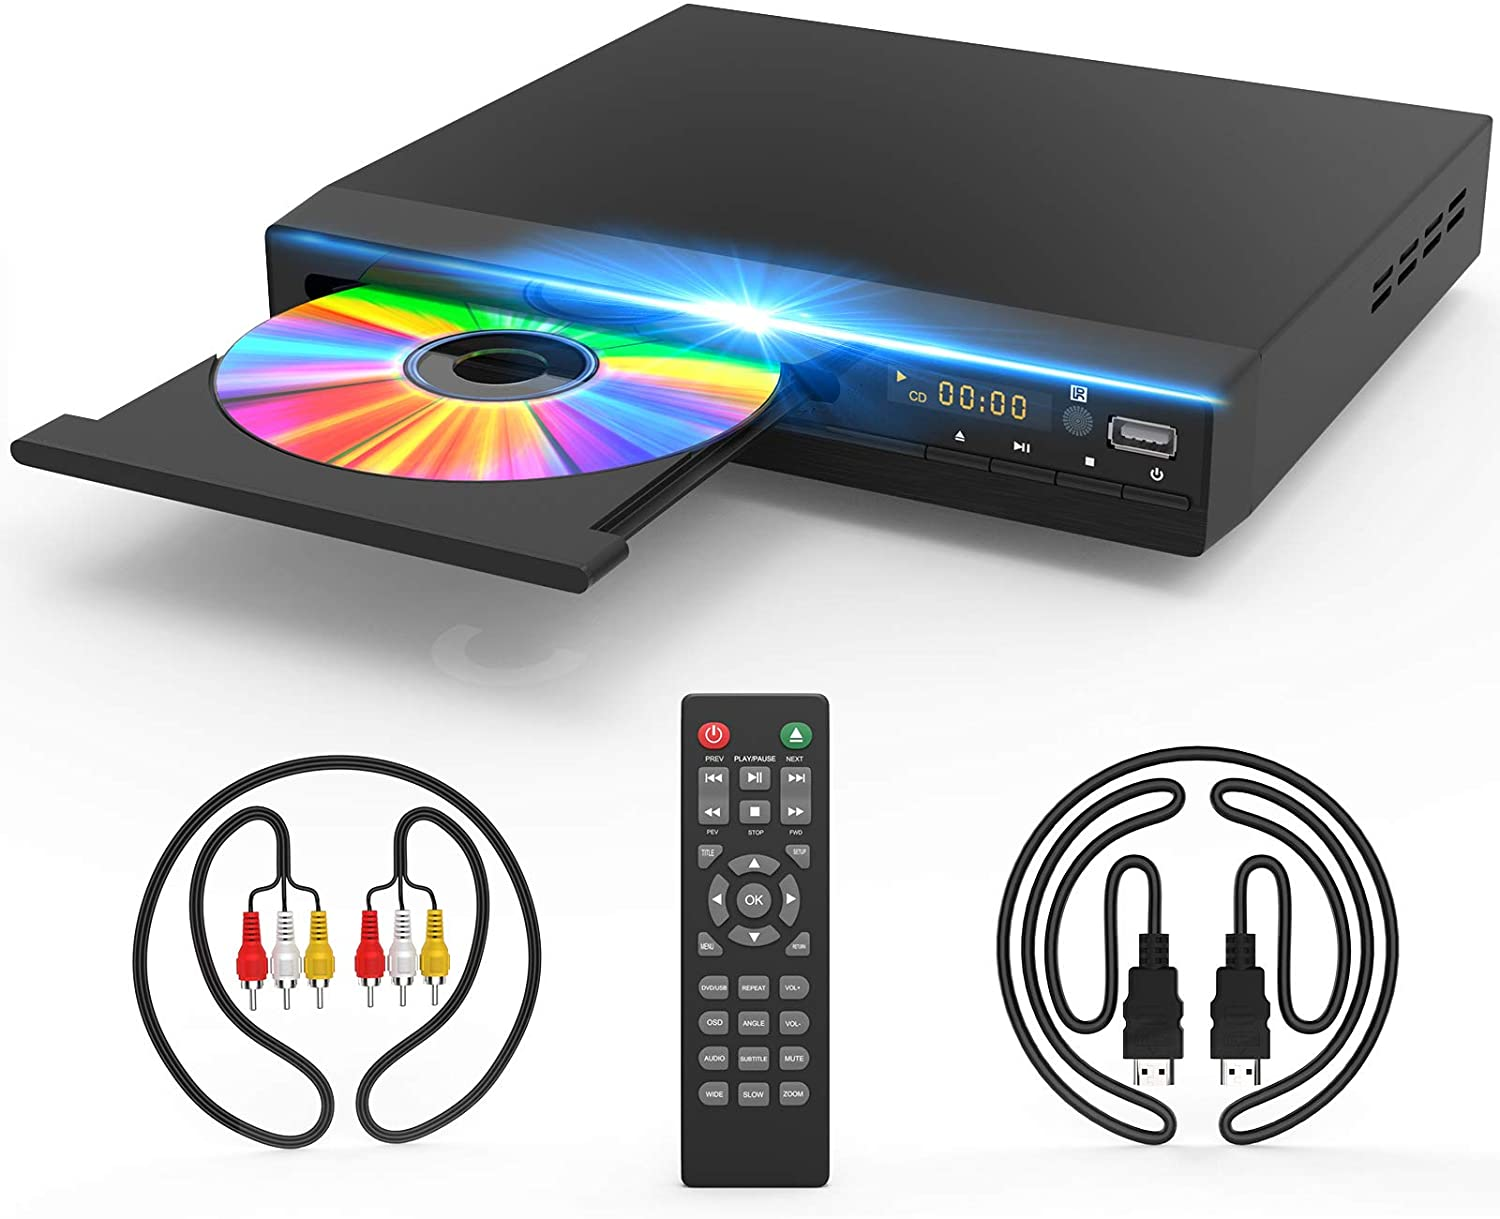 Jinhoo HD 1080p Upscaling HDMI & USB DVD Player